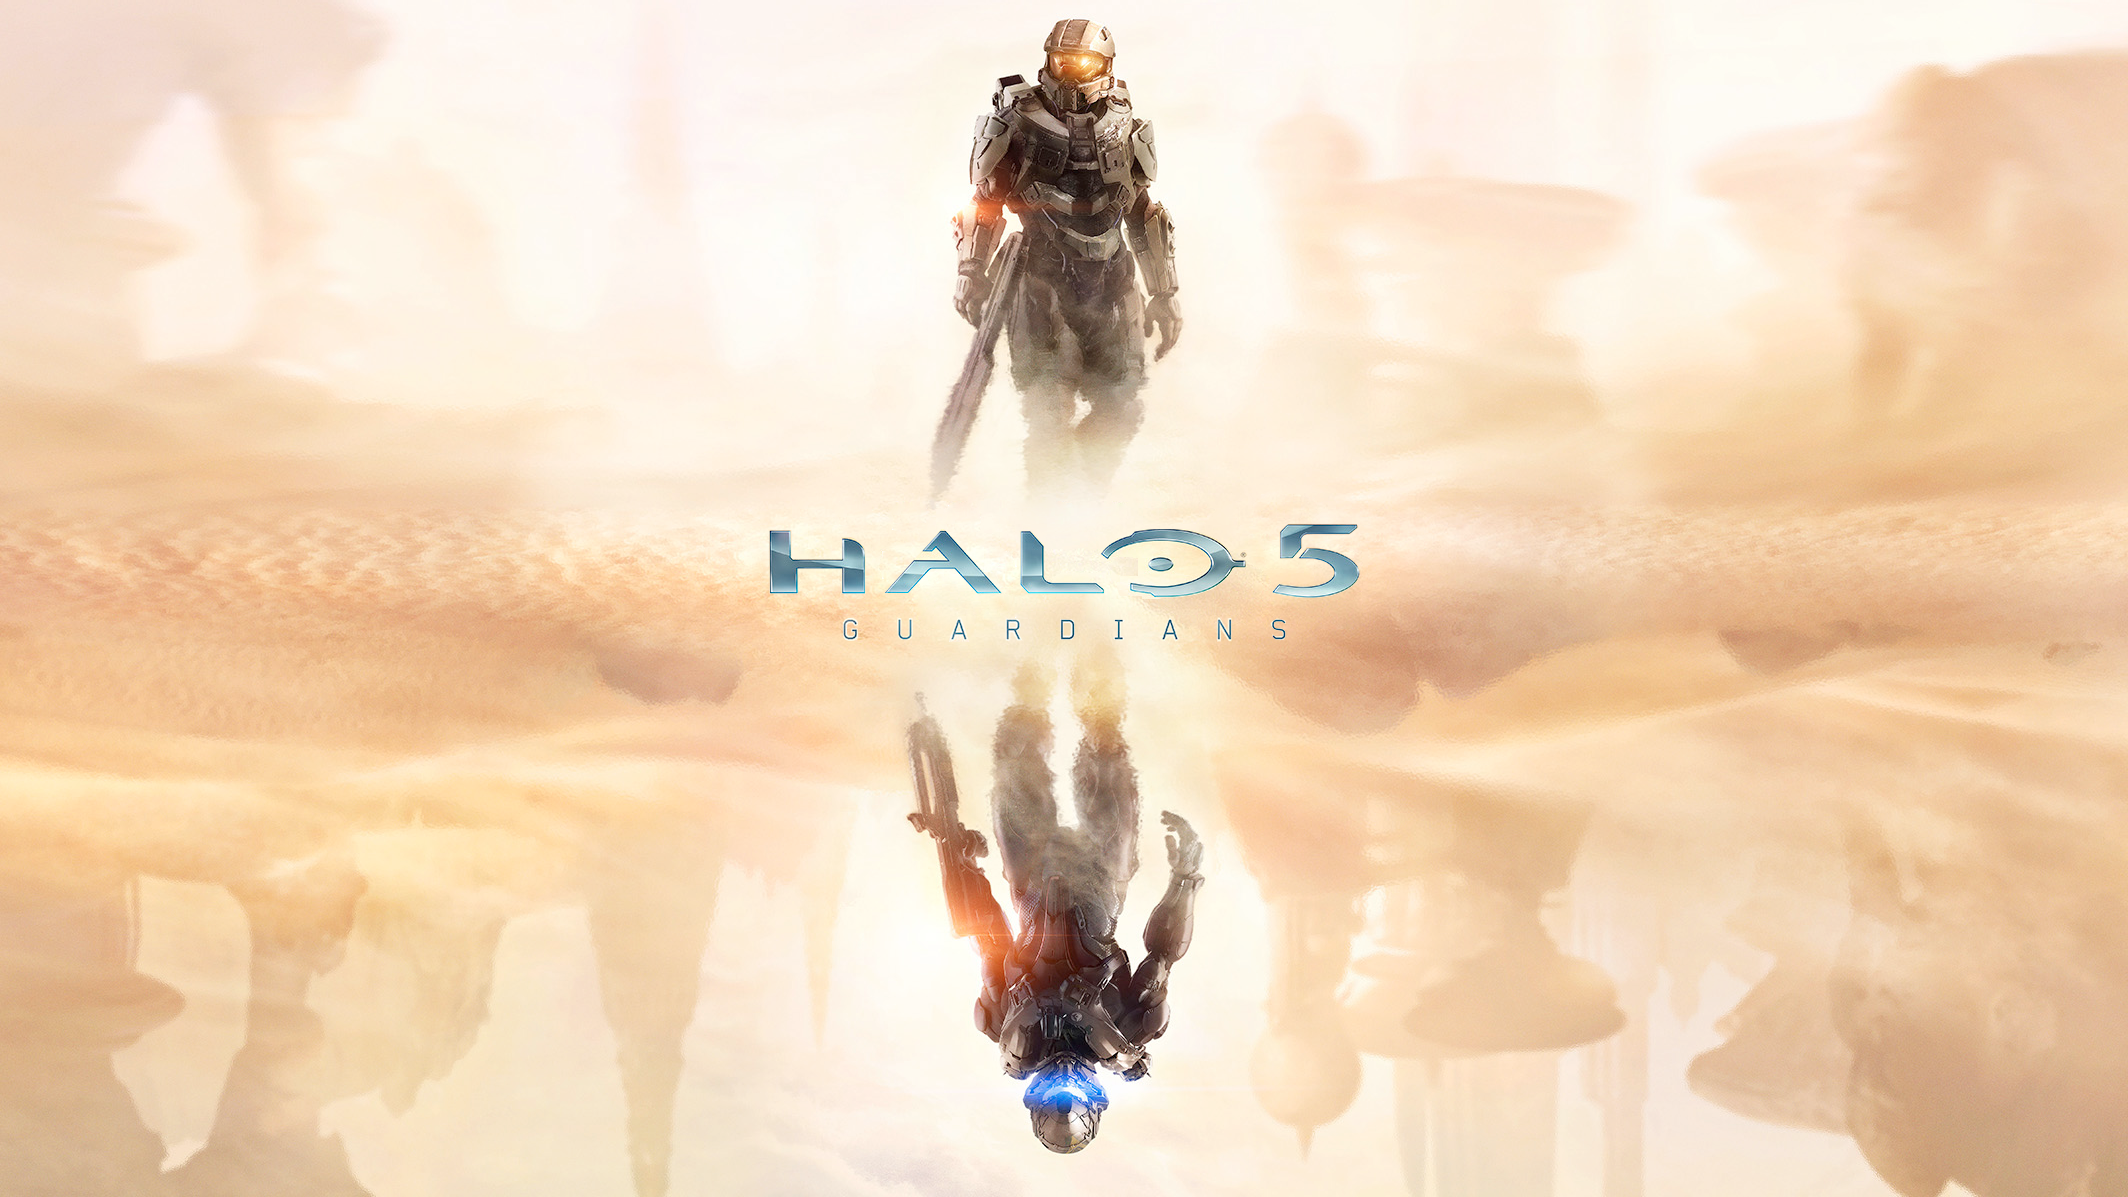 halo 5 guardians hd wallpaper full hd pictures